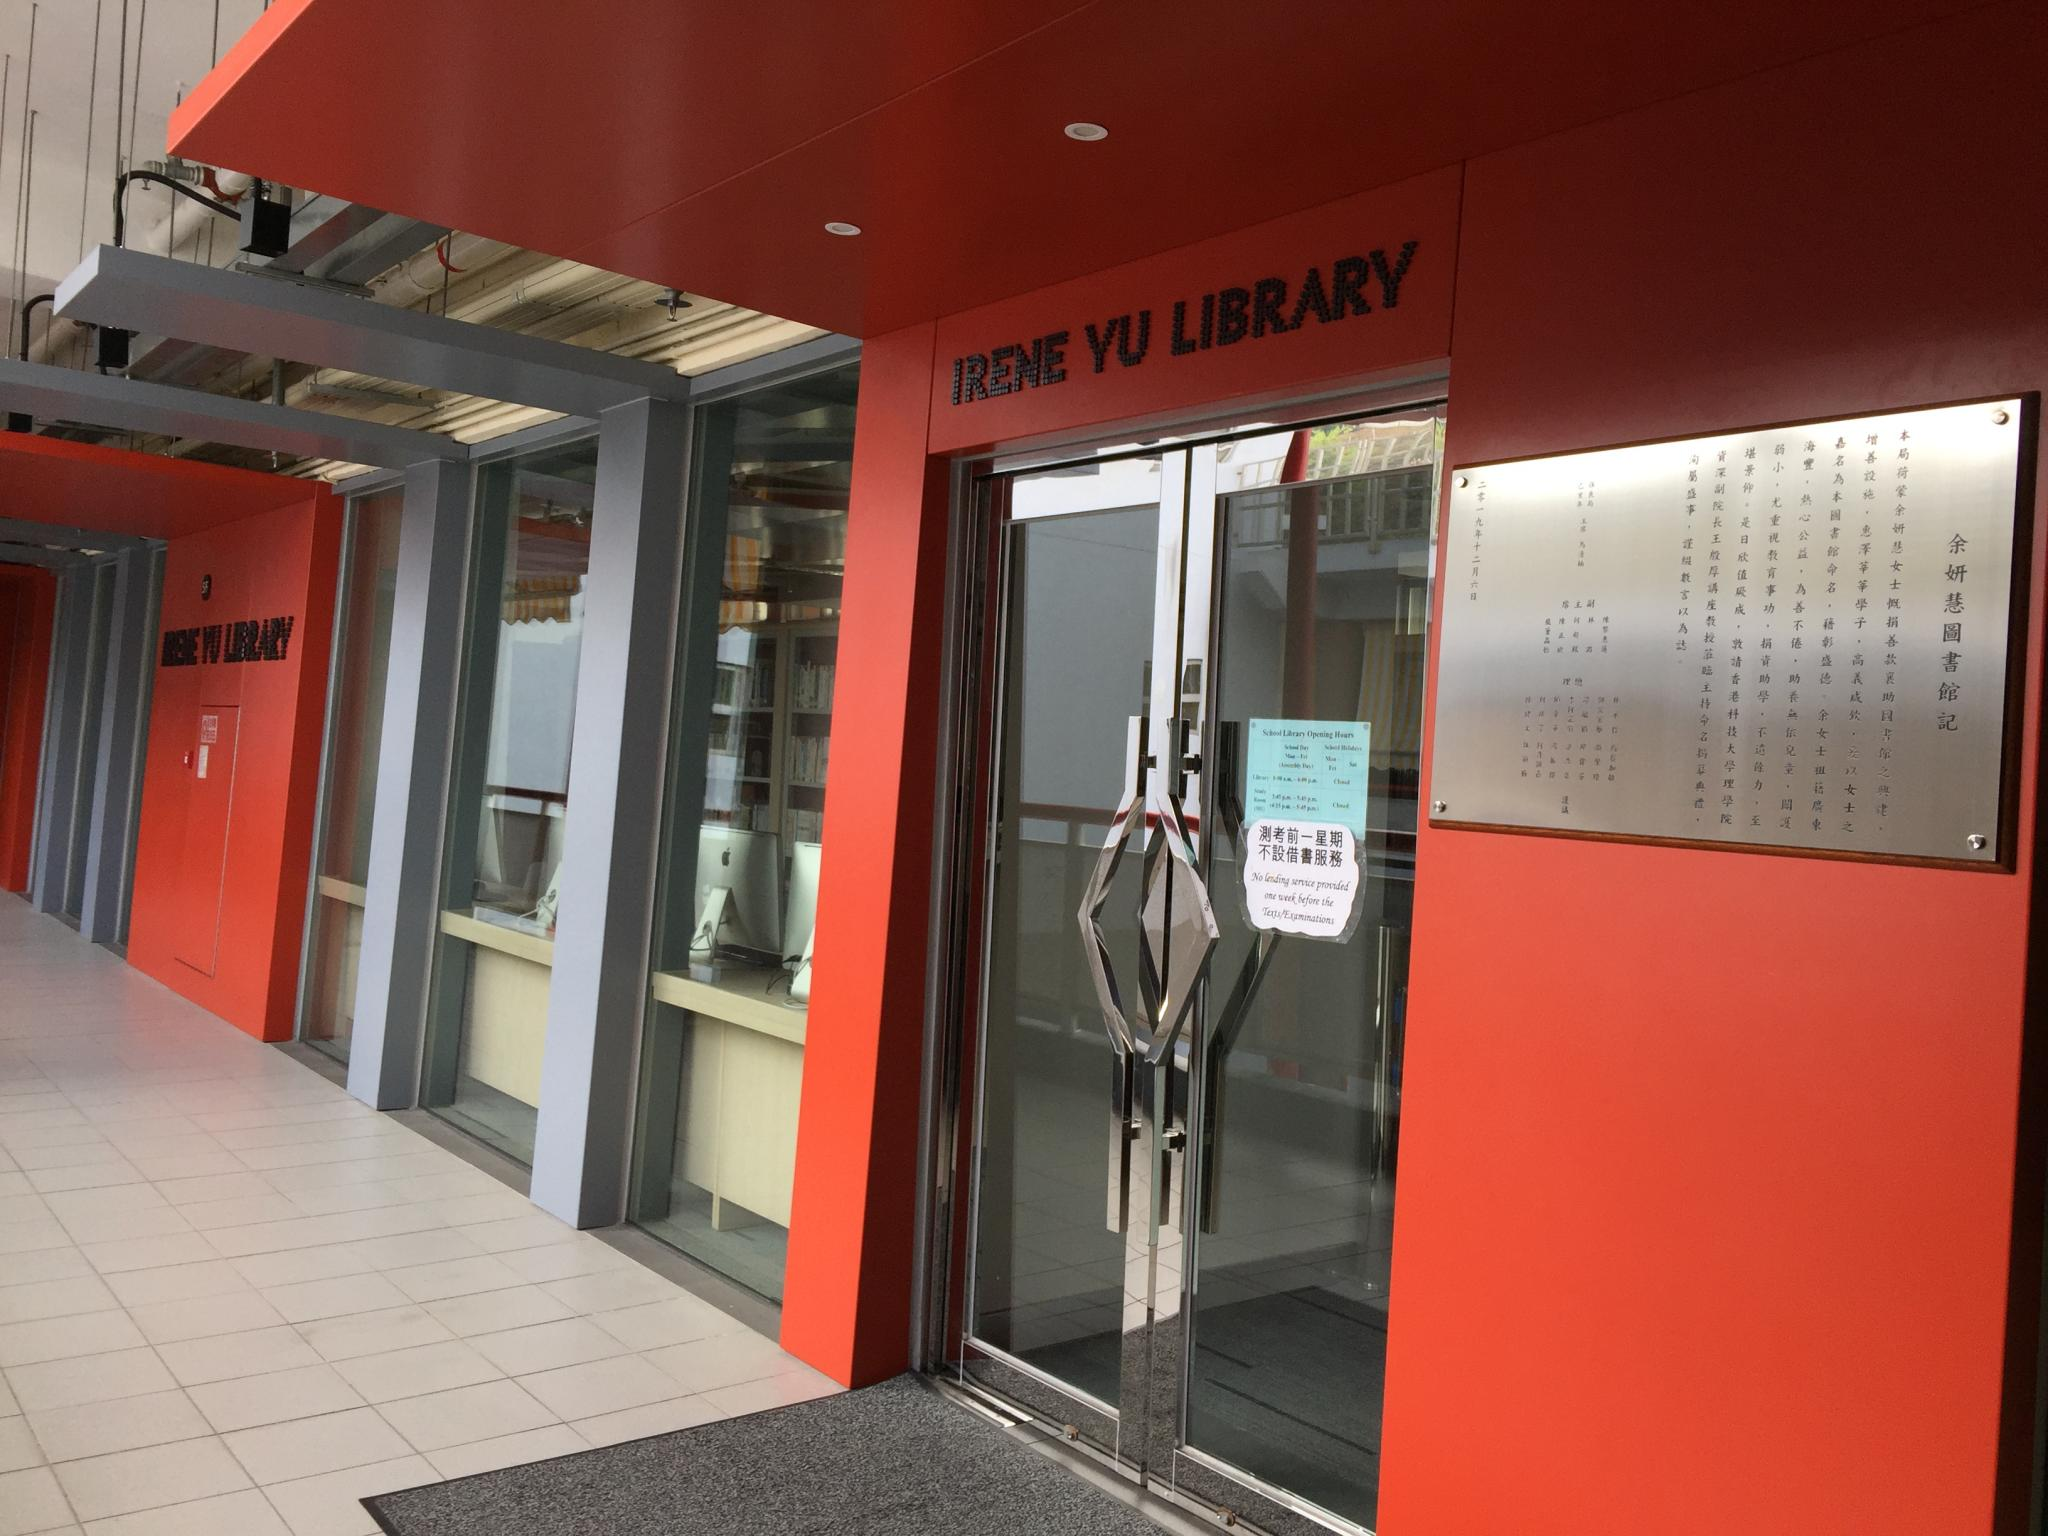 The Irene Yu Library is a rectangular structure, designed to blend the best of traditional library services with a wide range of electronic resources.